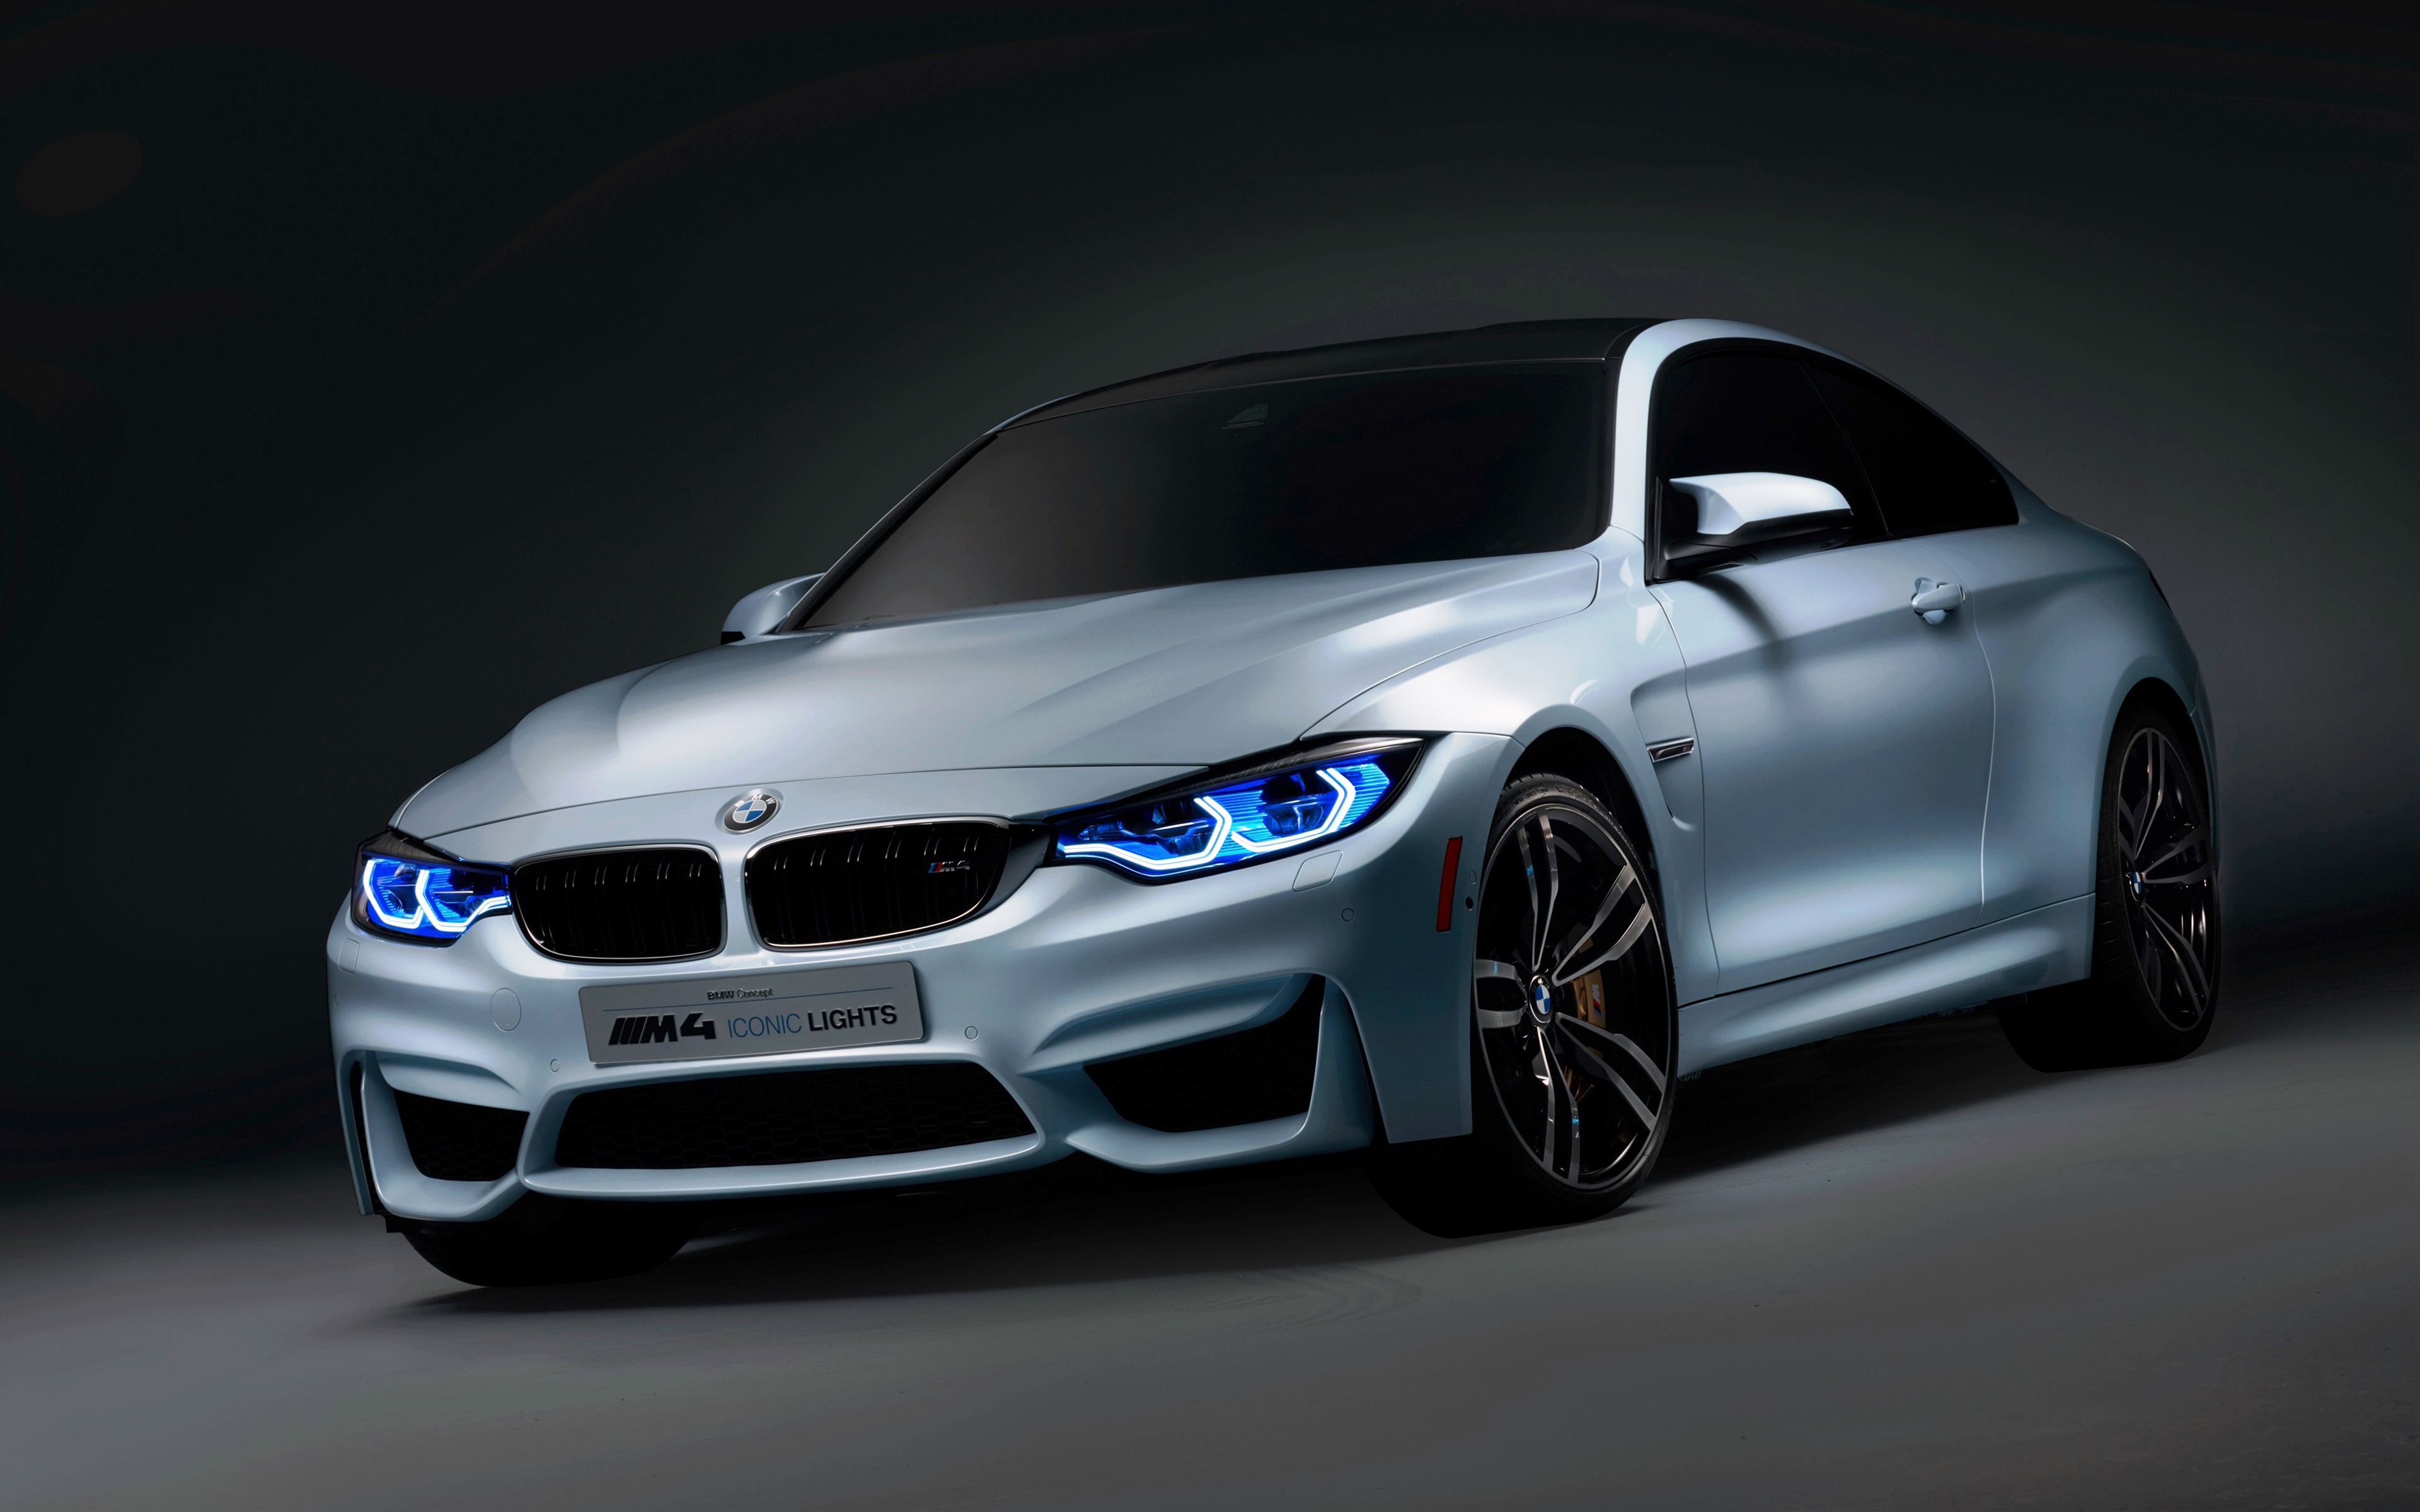 BMW Iconic Lights Concept 4K wallpaper